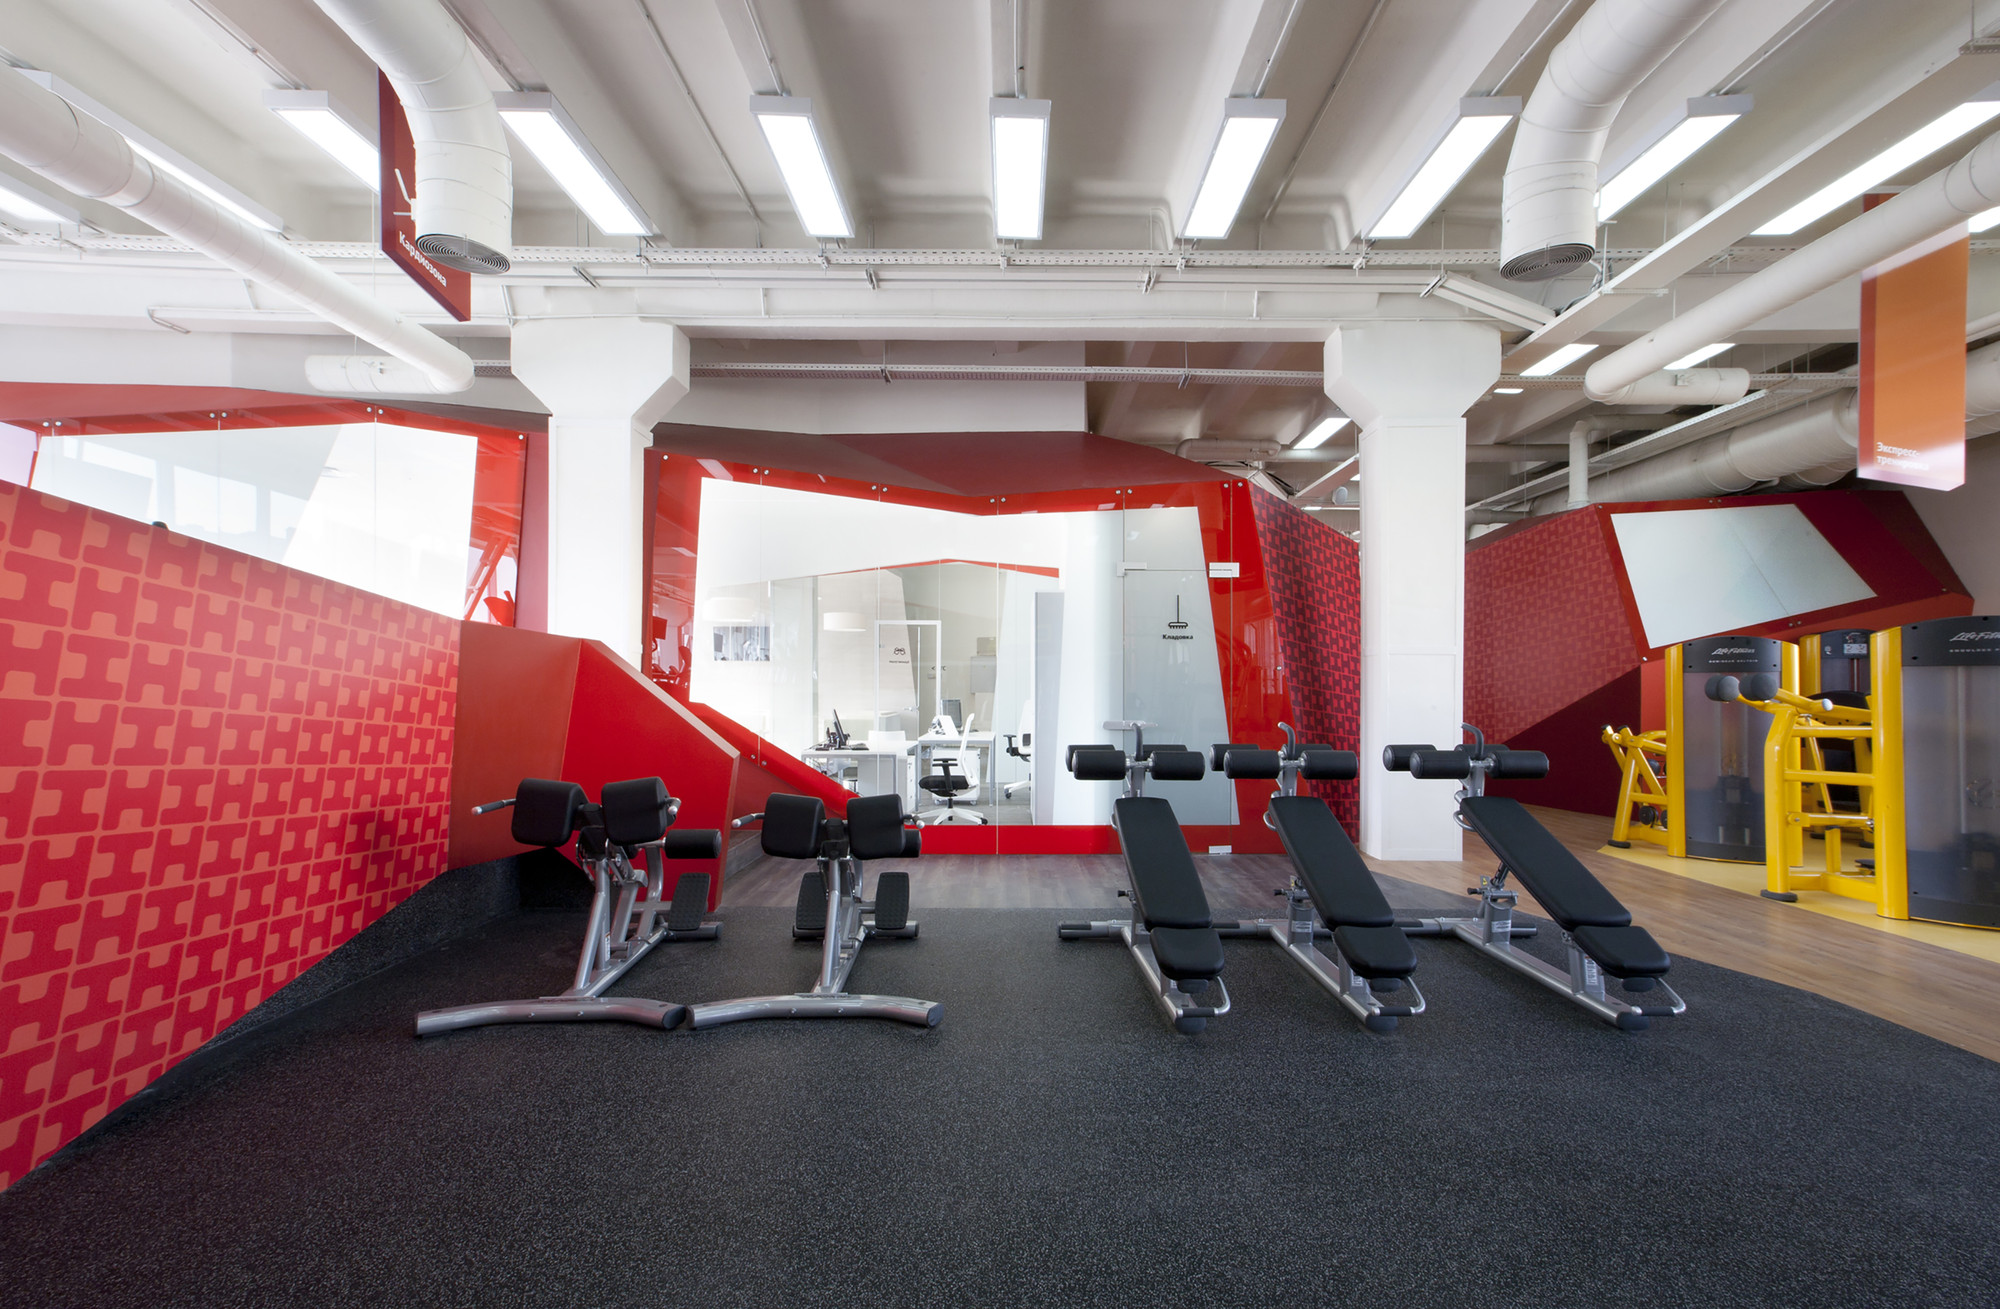 Smena Fitness Club Za Bor Architects ArchDaily